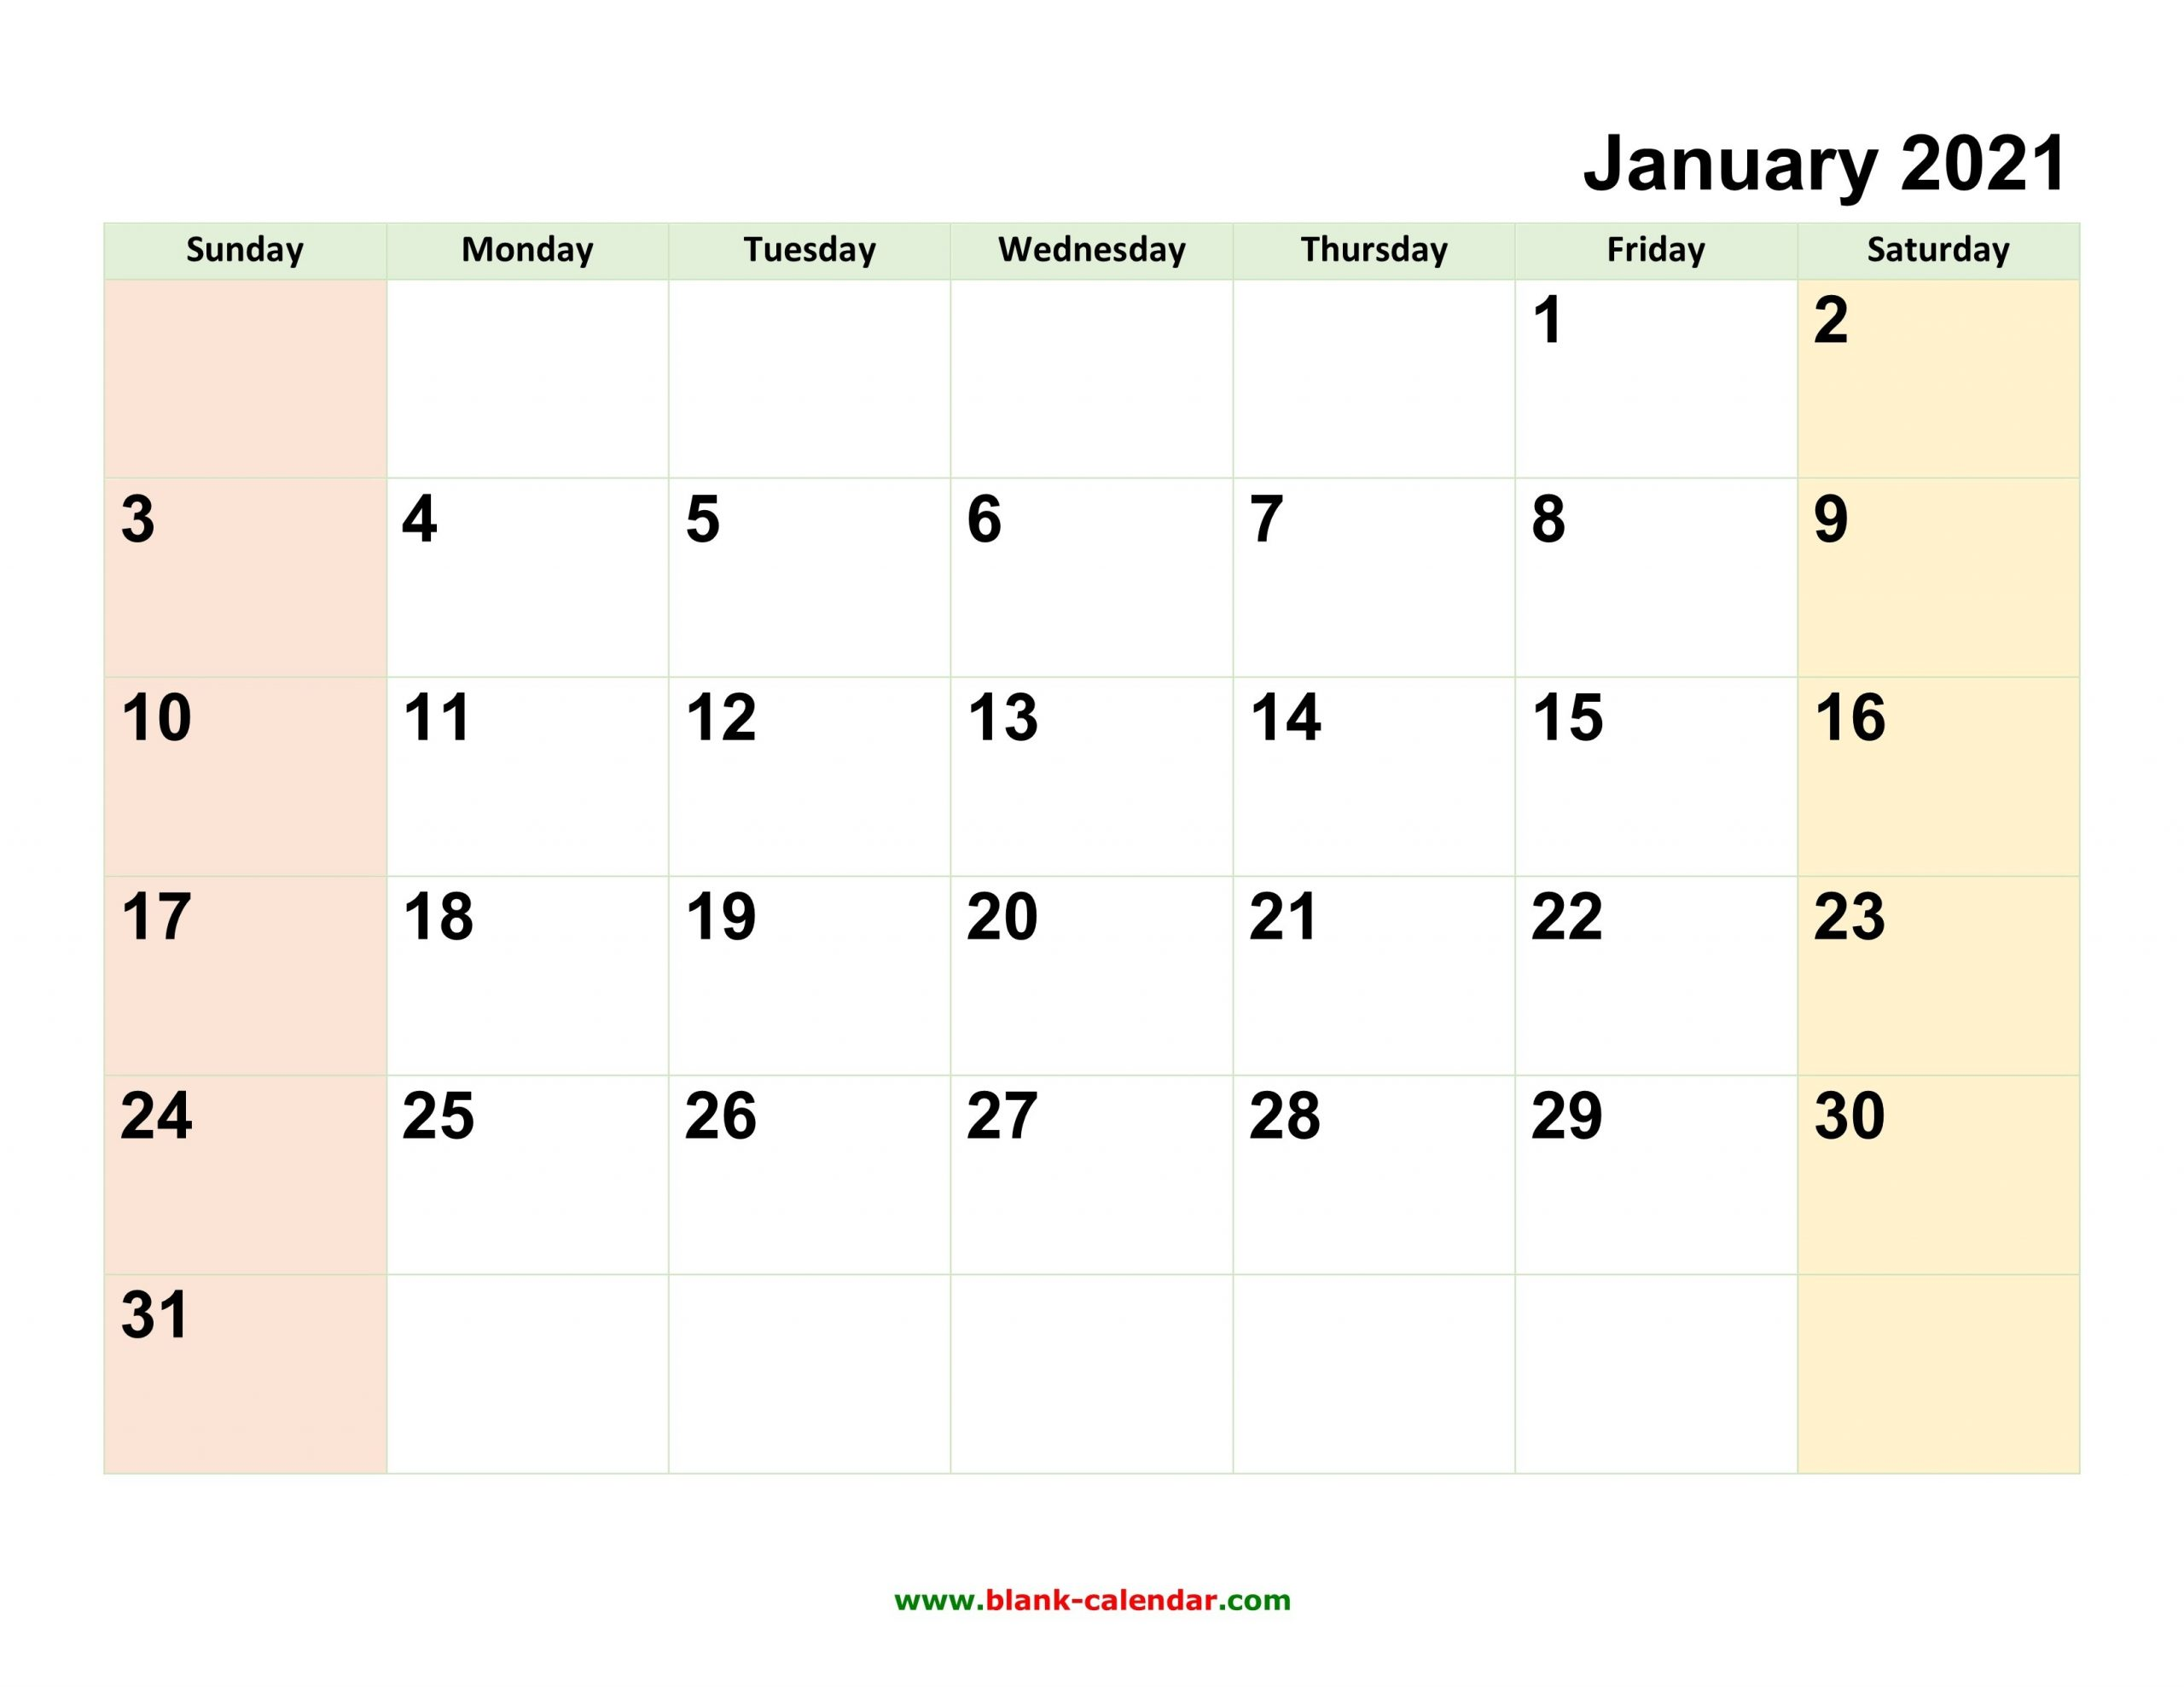 Monthly Calendar 2021   Free Download, Editable And Printable intended for 2021 Calendar With Numbered Days